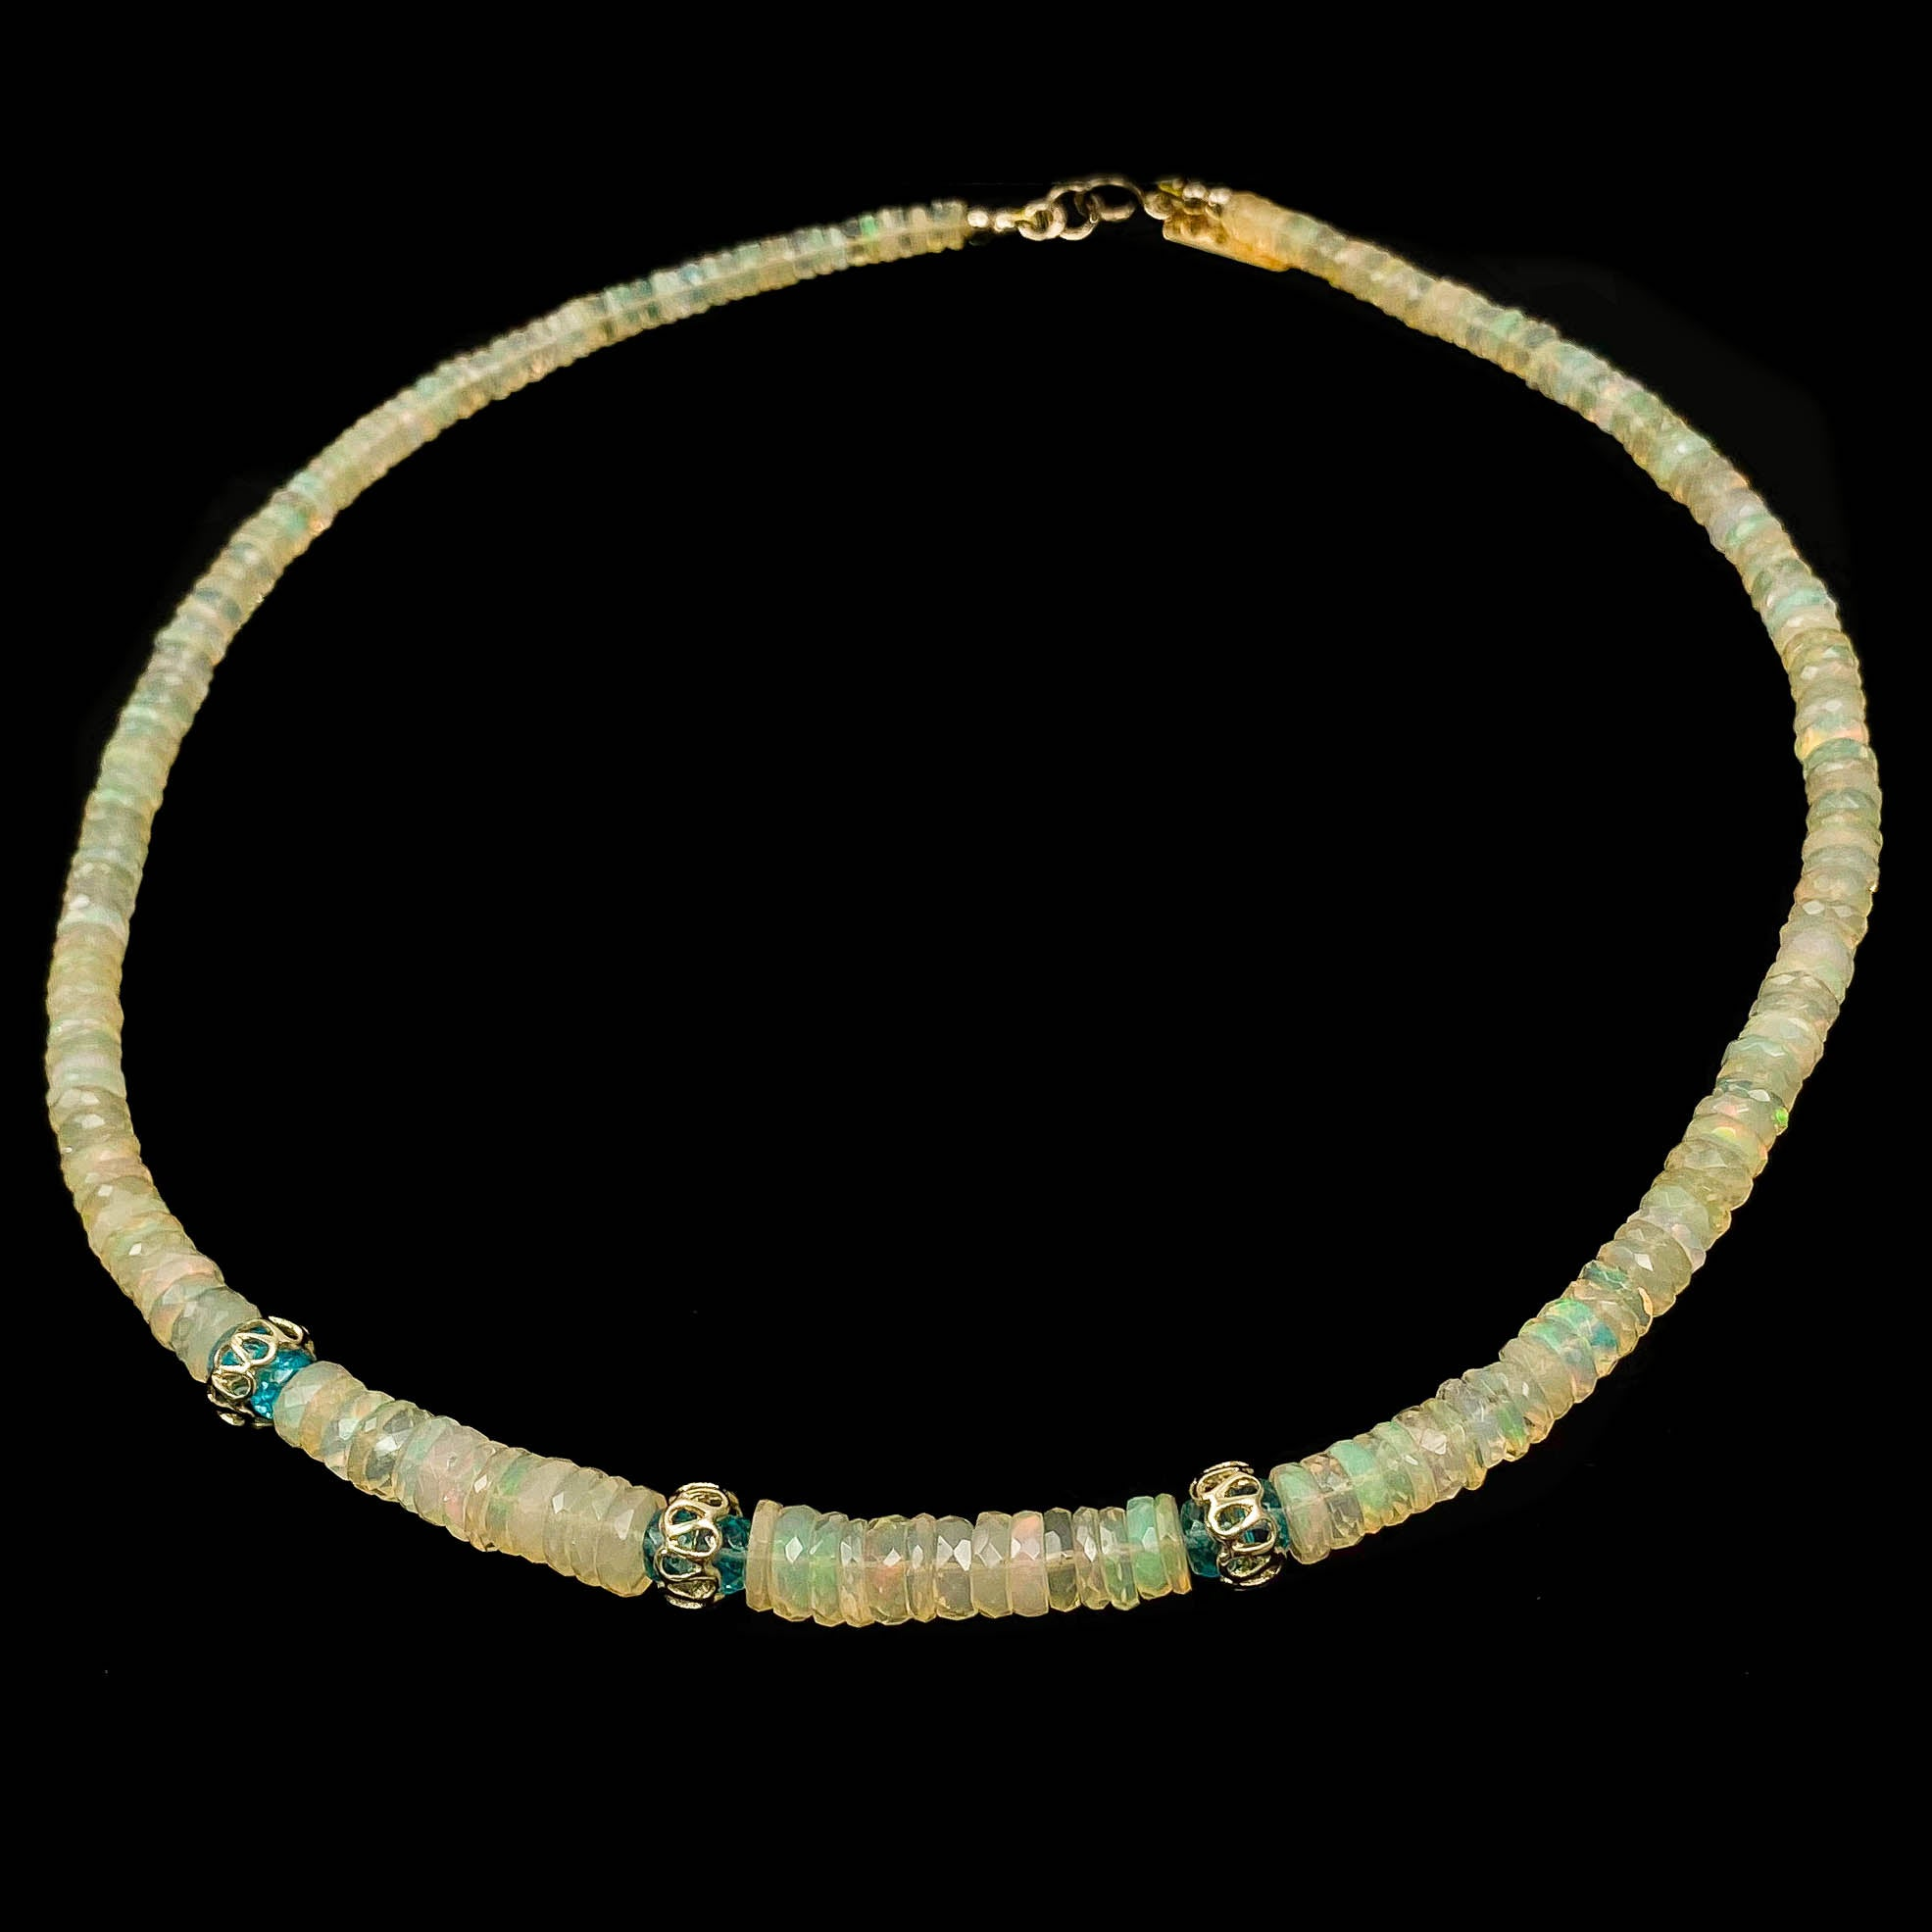 14k Gold, Ethiopian Welo Opal, Blue Apatite Necklace